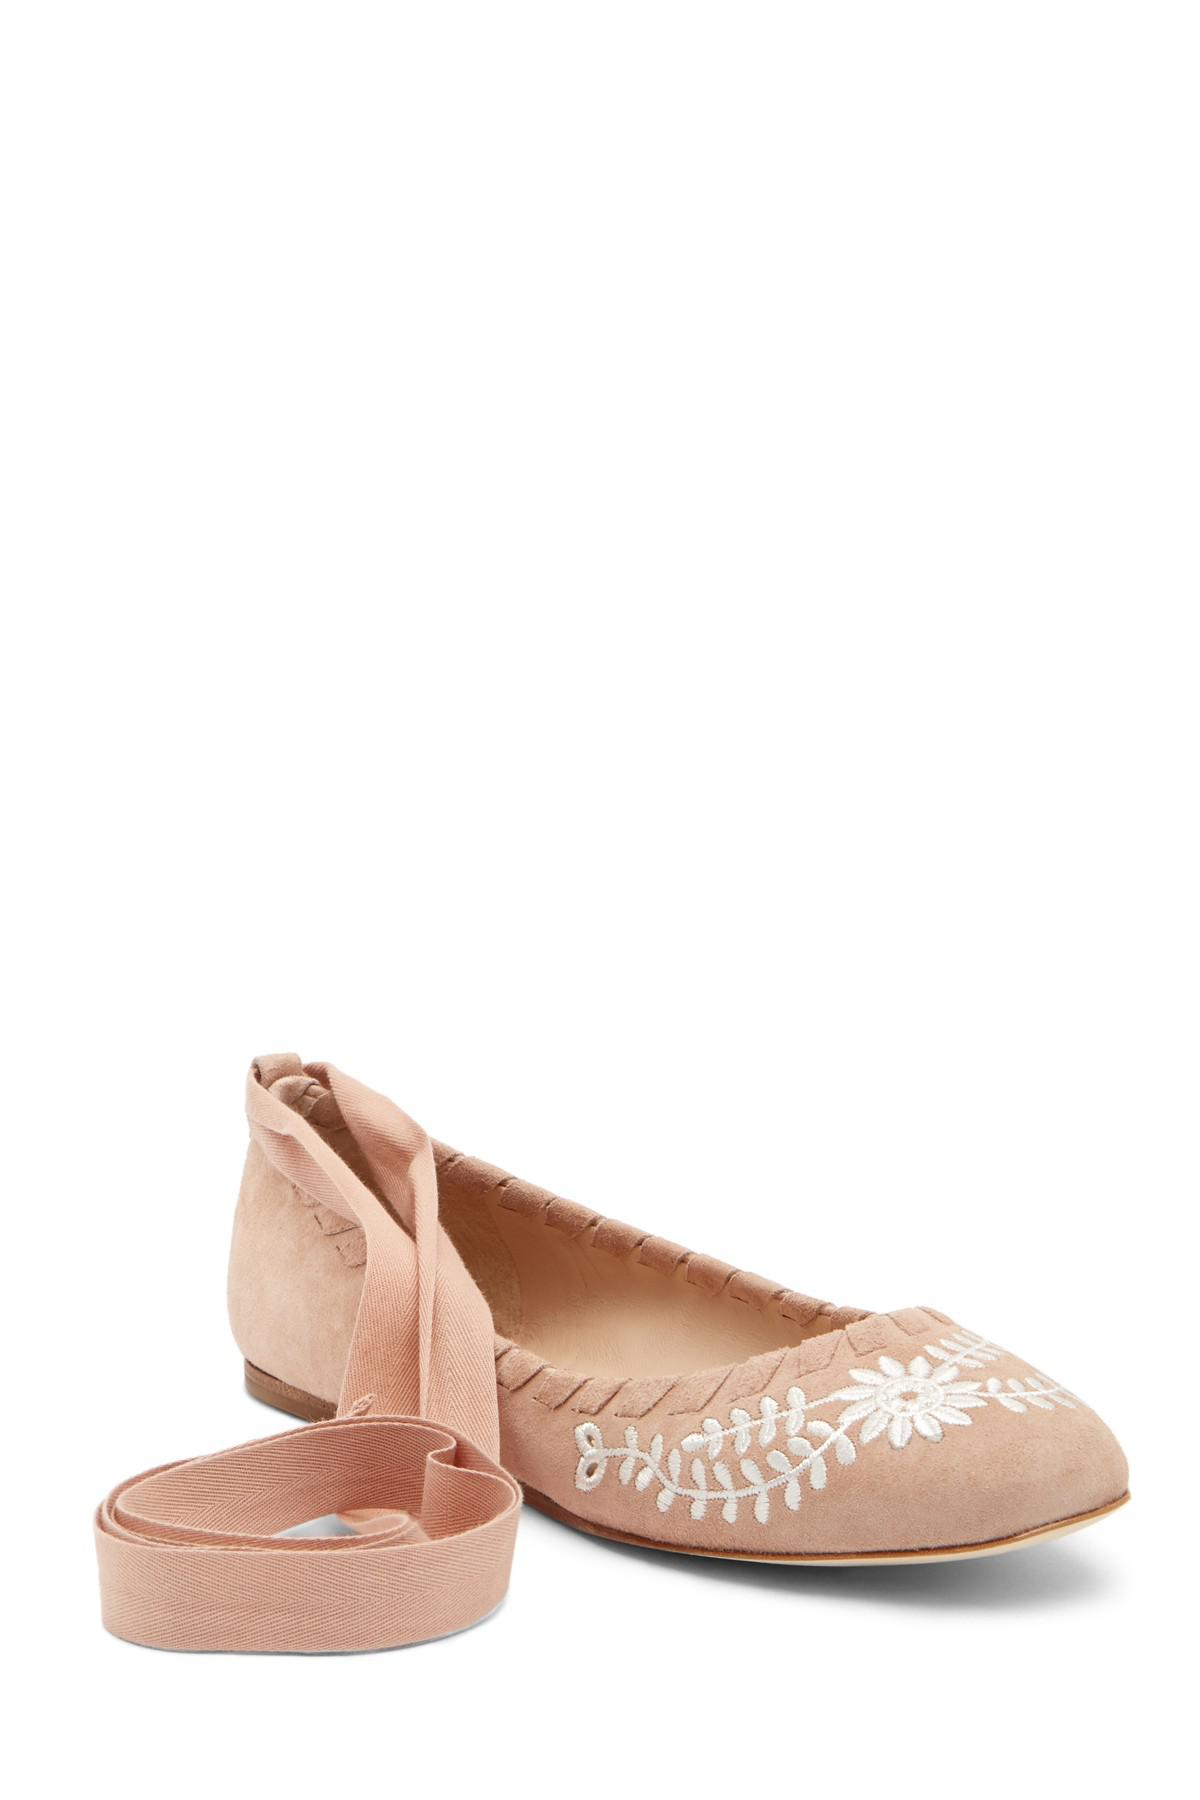 Via Spiga Baylie Embroidered Suede Flat VWprCaOM5